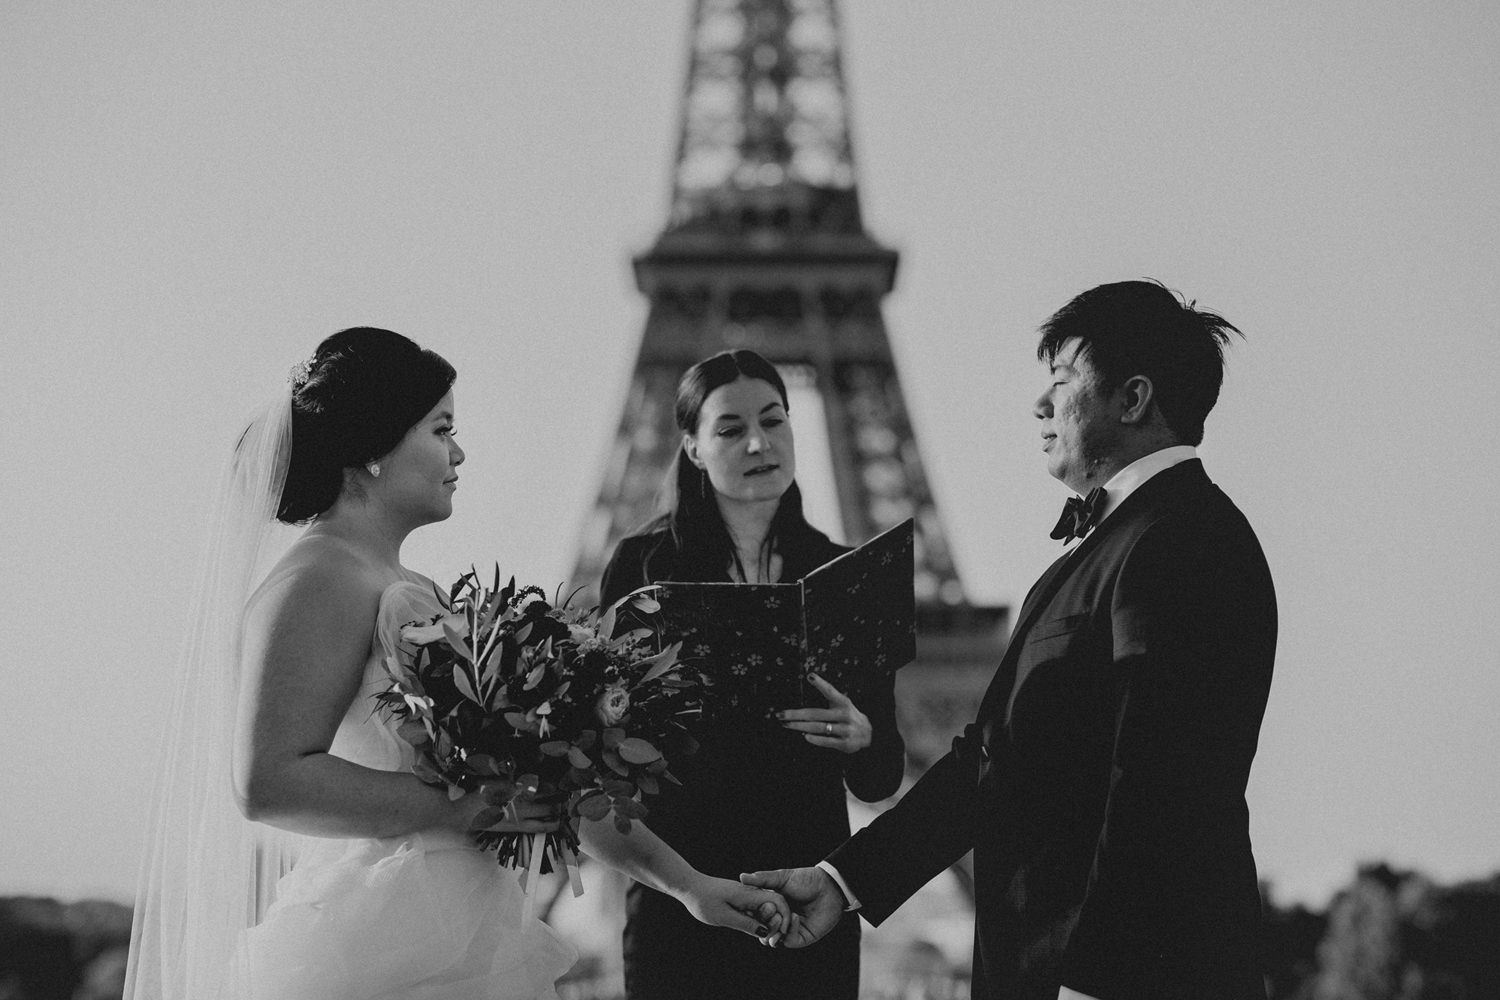 Asian bride and groom having a wedding ceremony in front of the Eiffel Tower